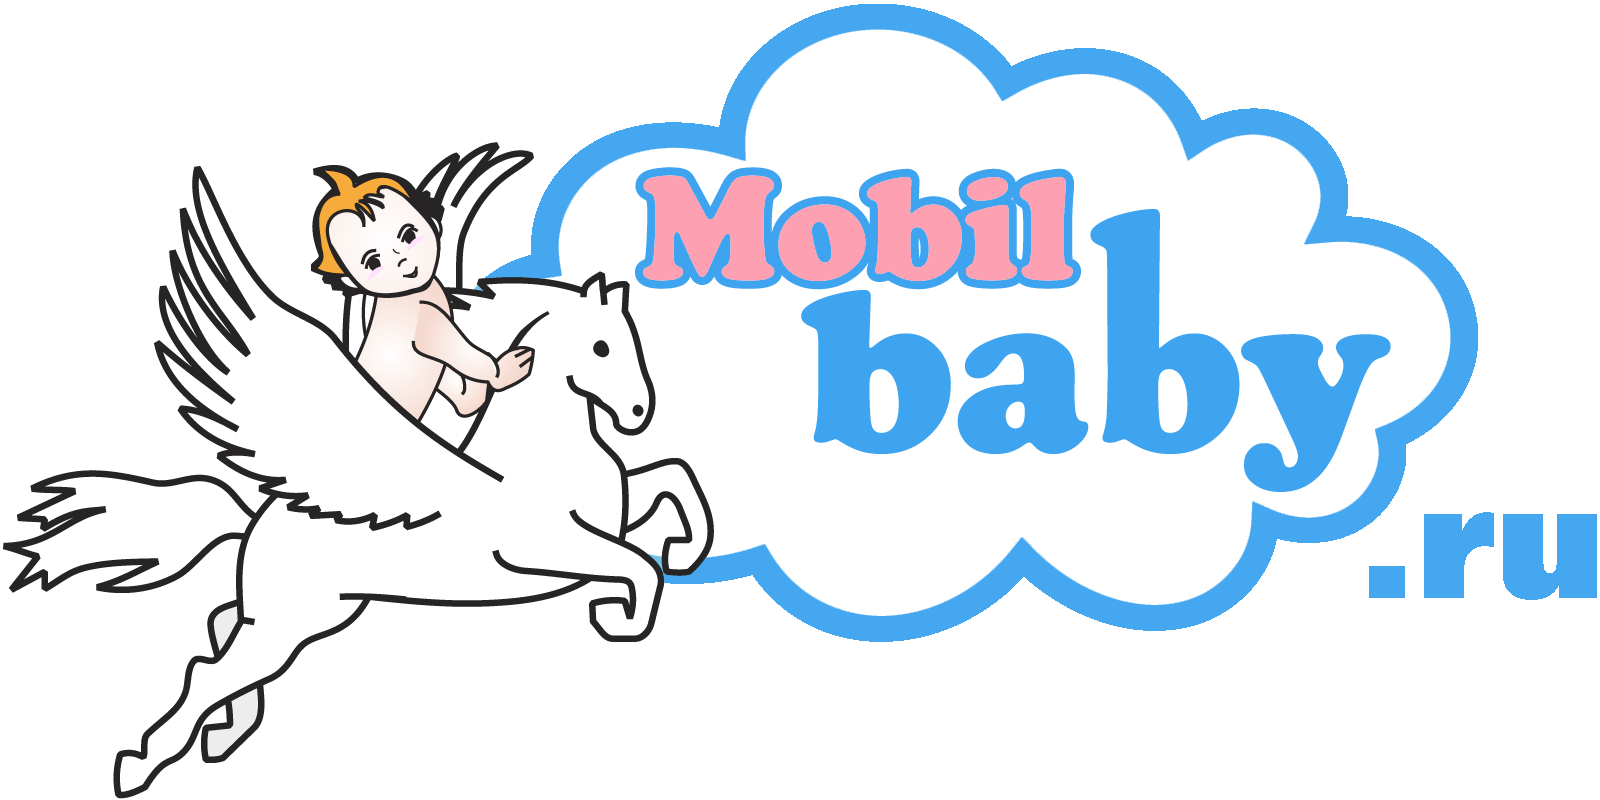 Mobilbaby